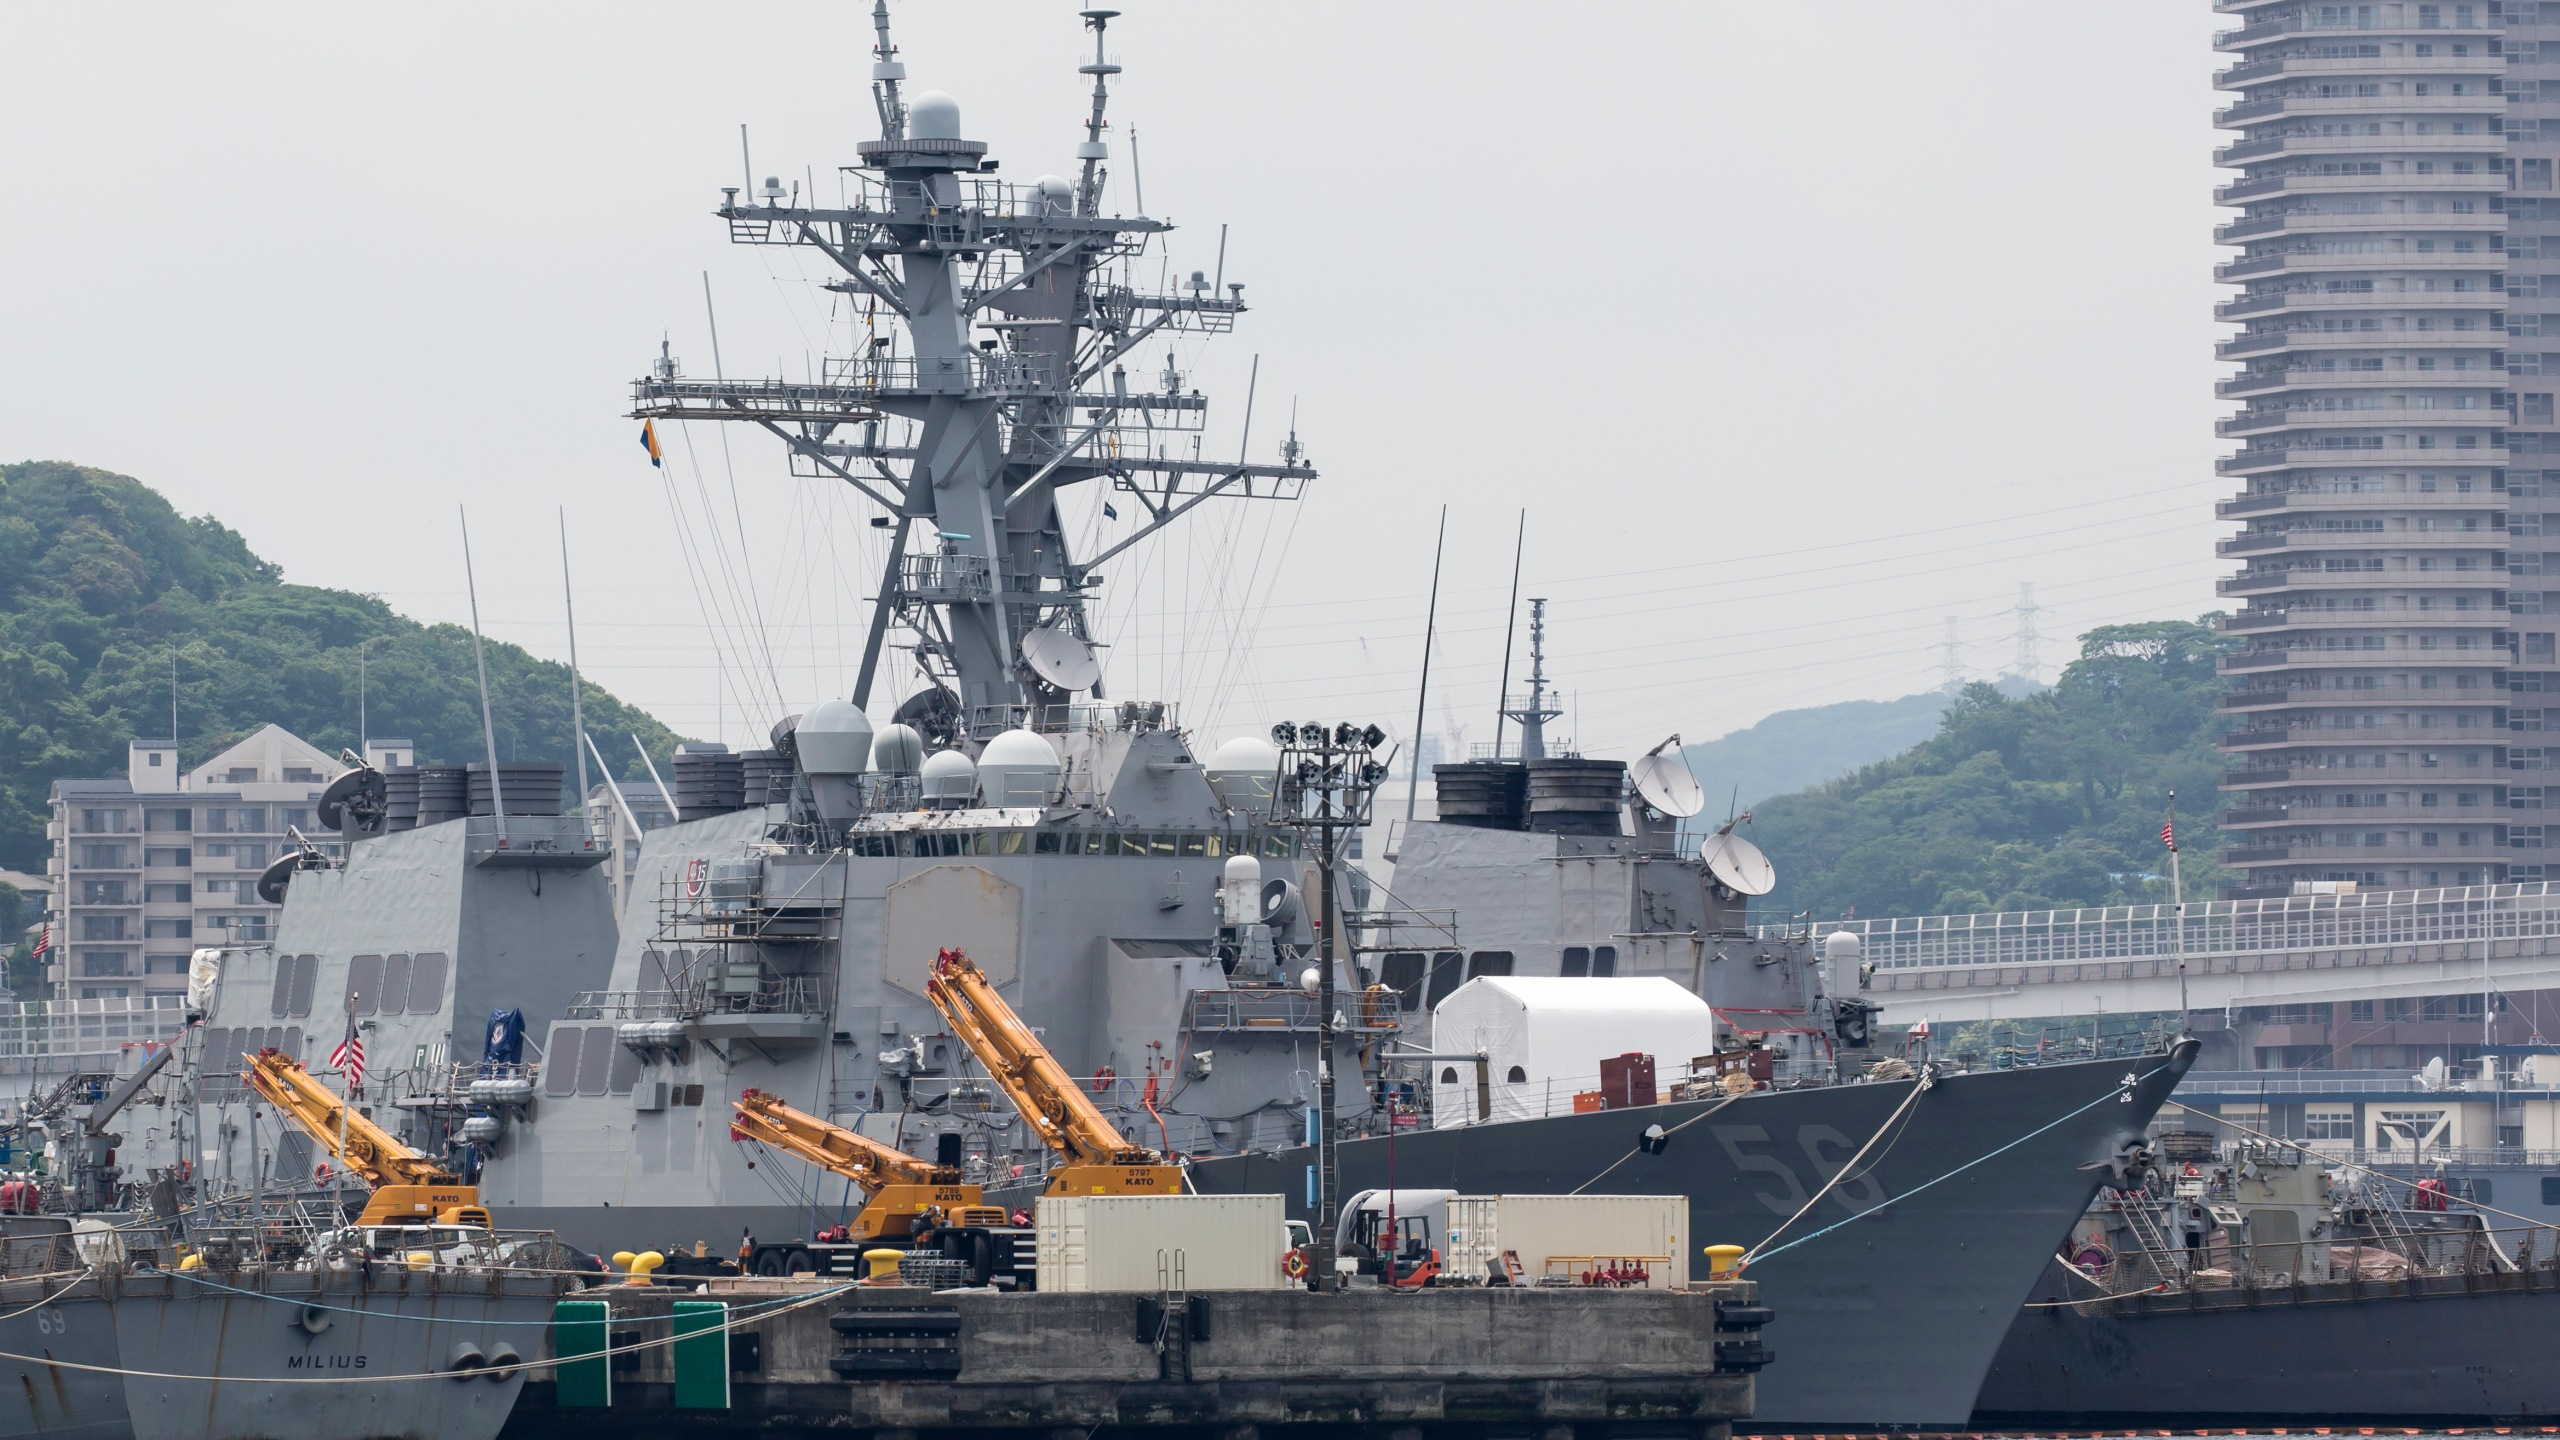 The USS John S. McCain is moored in a dock at the Yokosuka Naval Base on June 1, 2019 in Yokosuka, Japan. (Credit: Tomohiro Ohsumi/Getty Images)